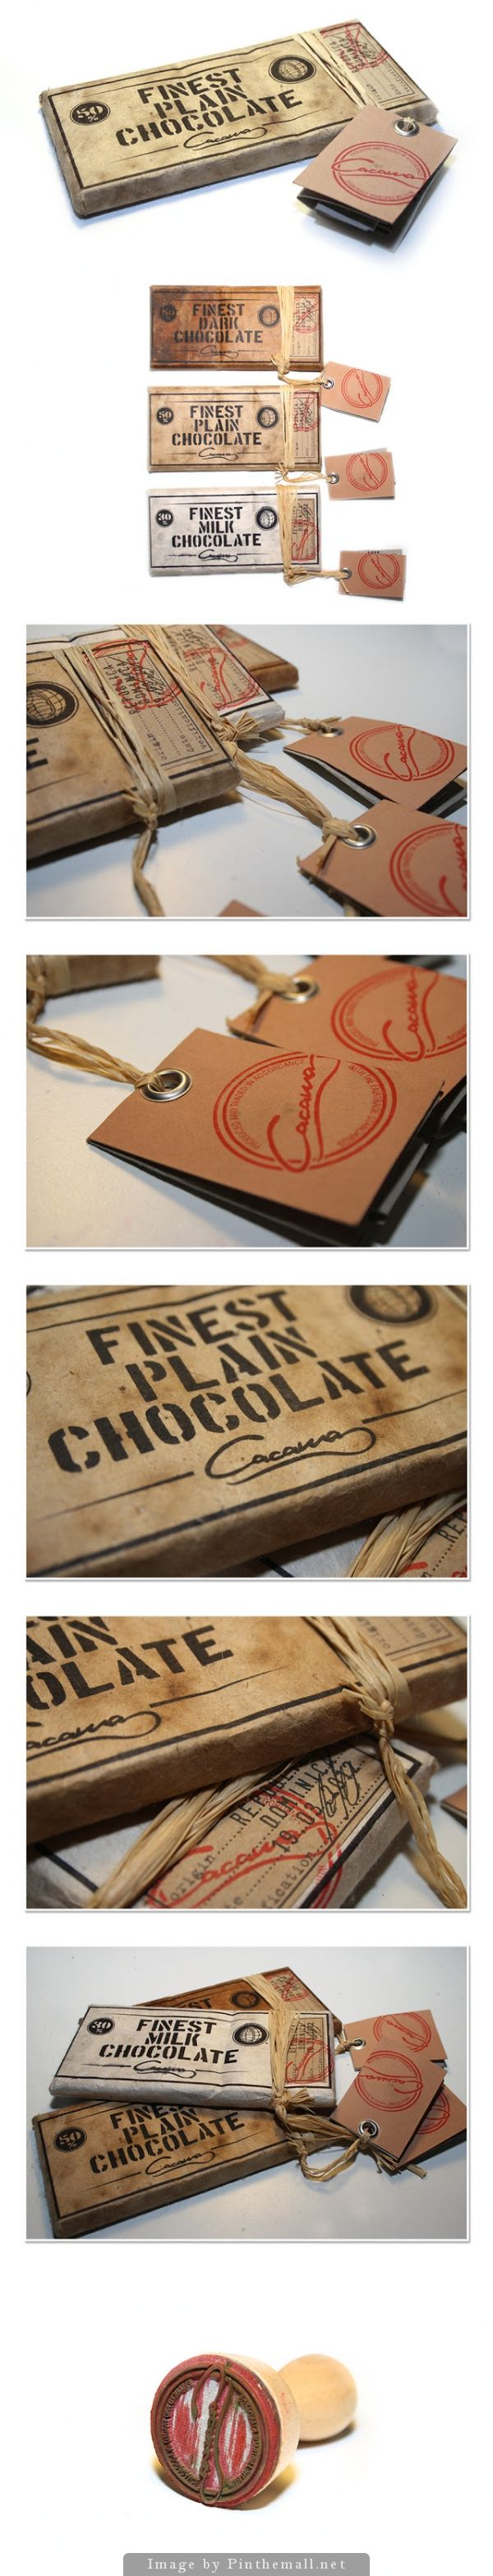 The Finest Chocolate (Student Project) Designer: Marcel Richard - See more at: http://www.packagingoftheworld.com/